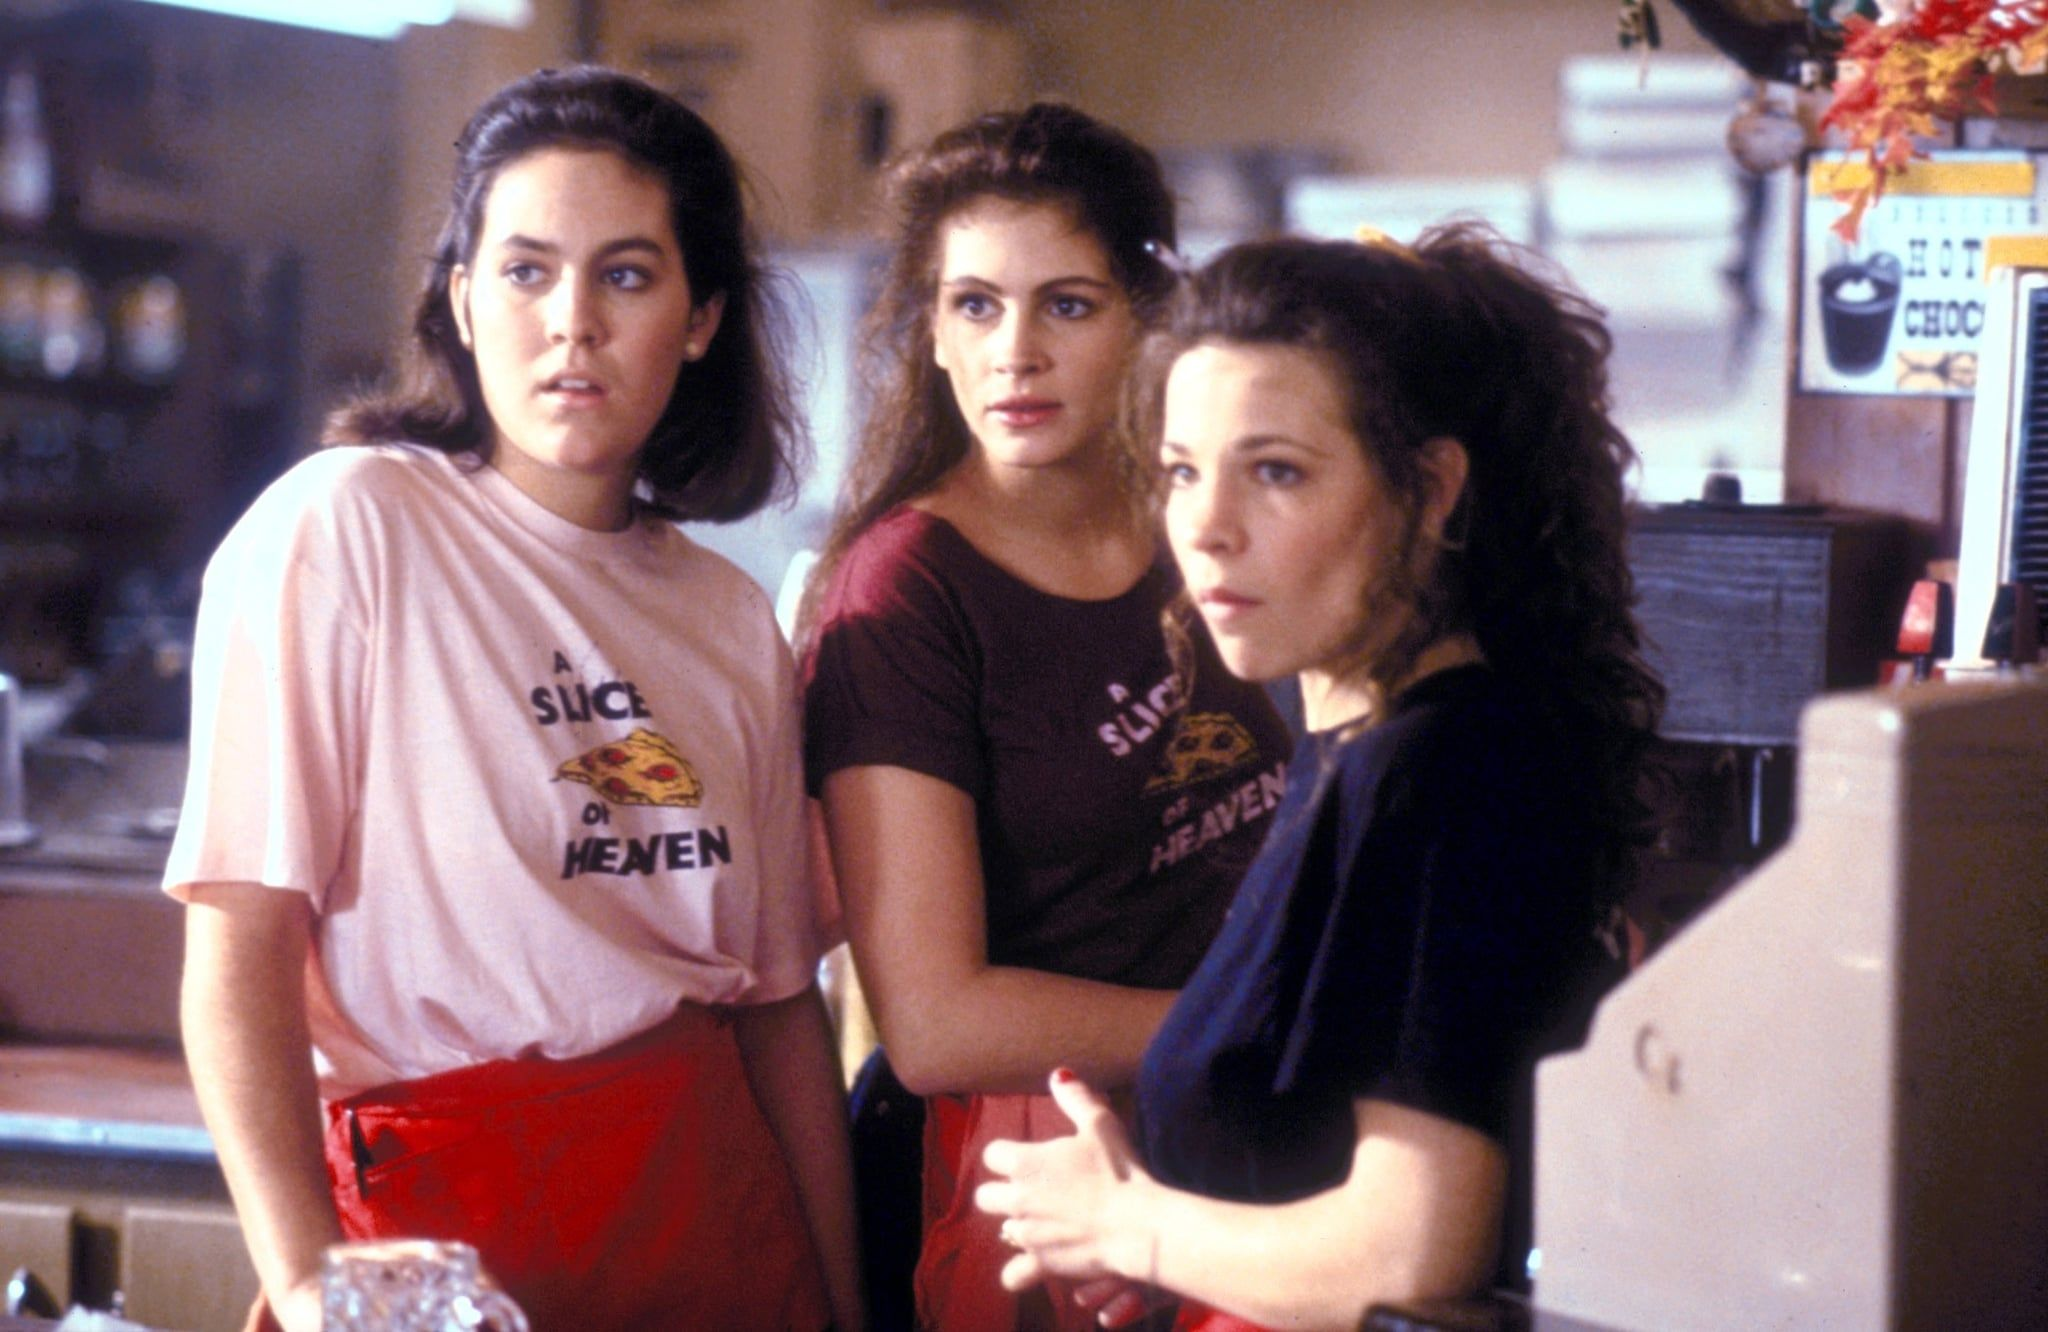 4ad8c45c625bc6e3fe793888209fafda 10 Things You Never Knew About The 1988 Julia Roberts Film Mystic Pizza